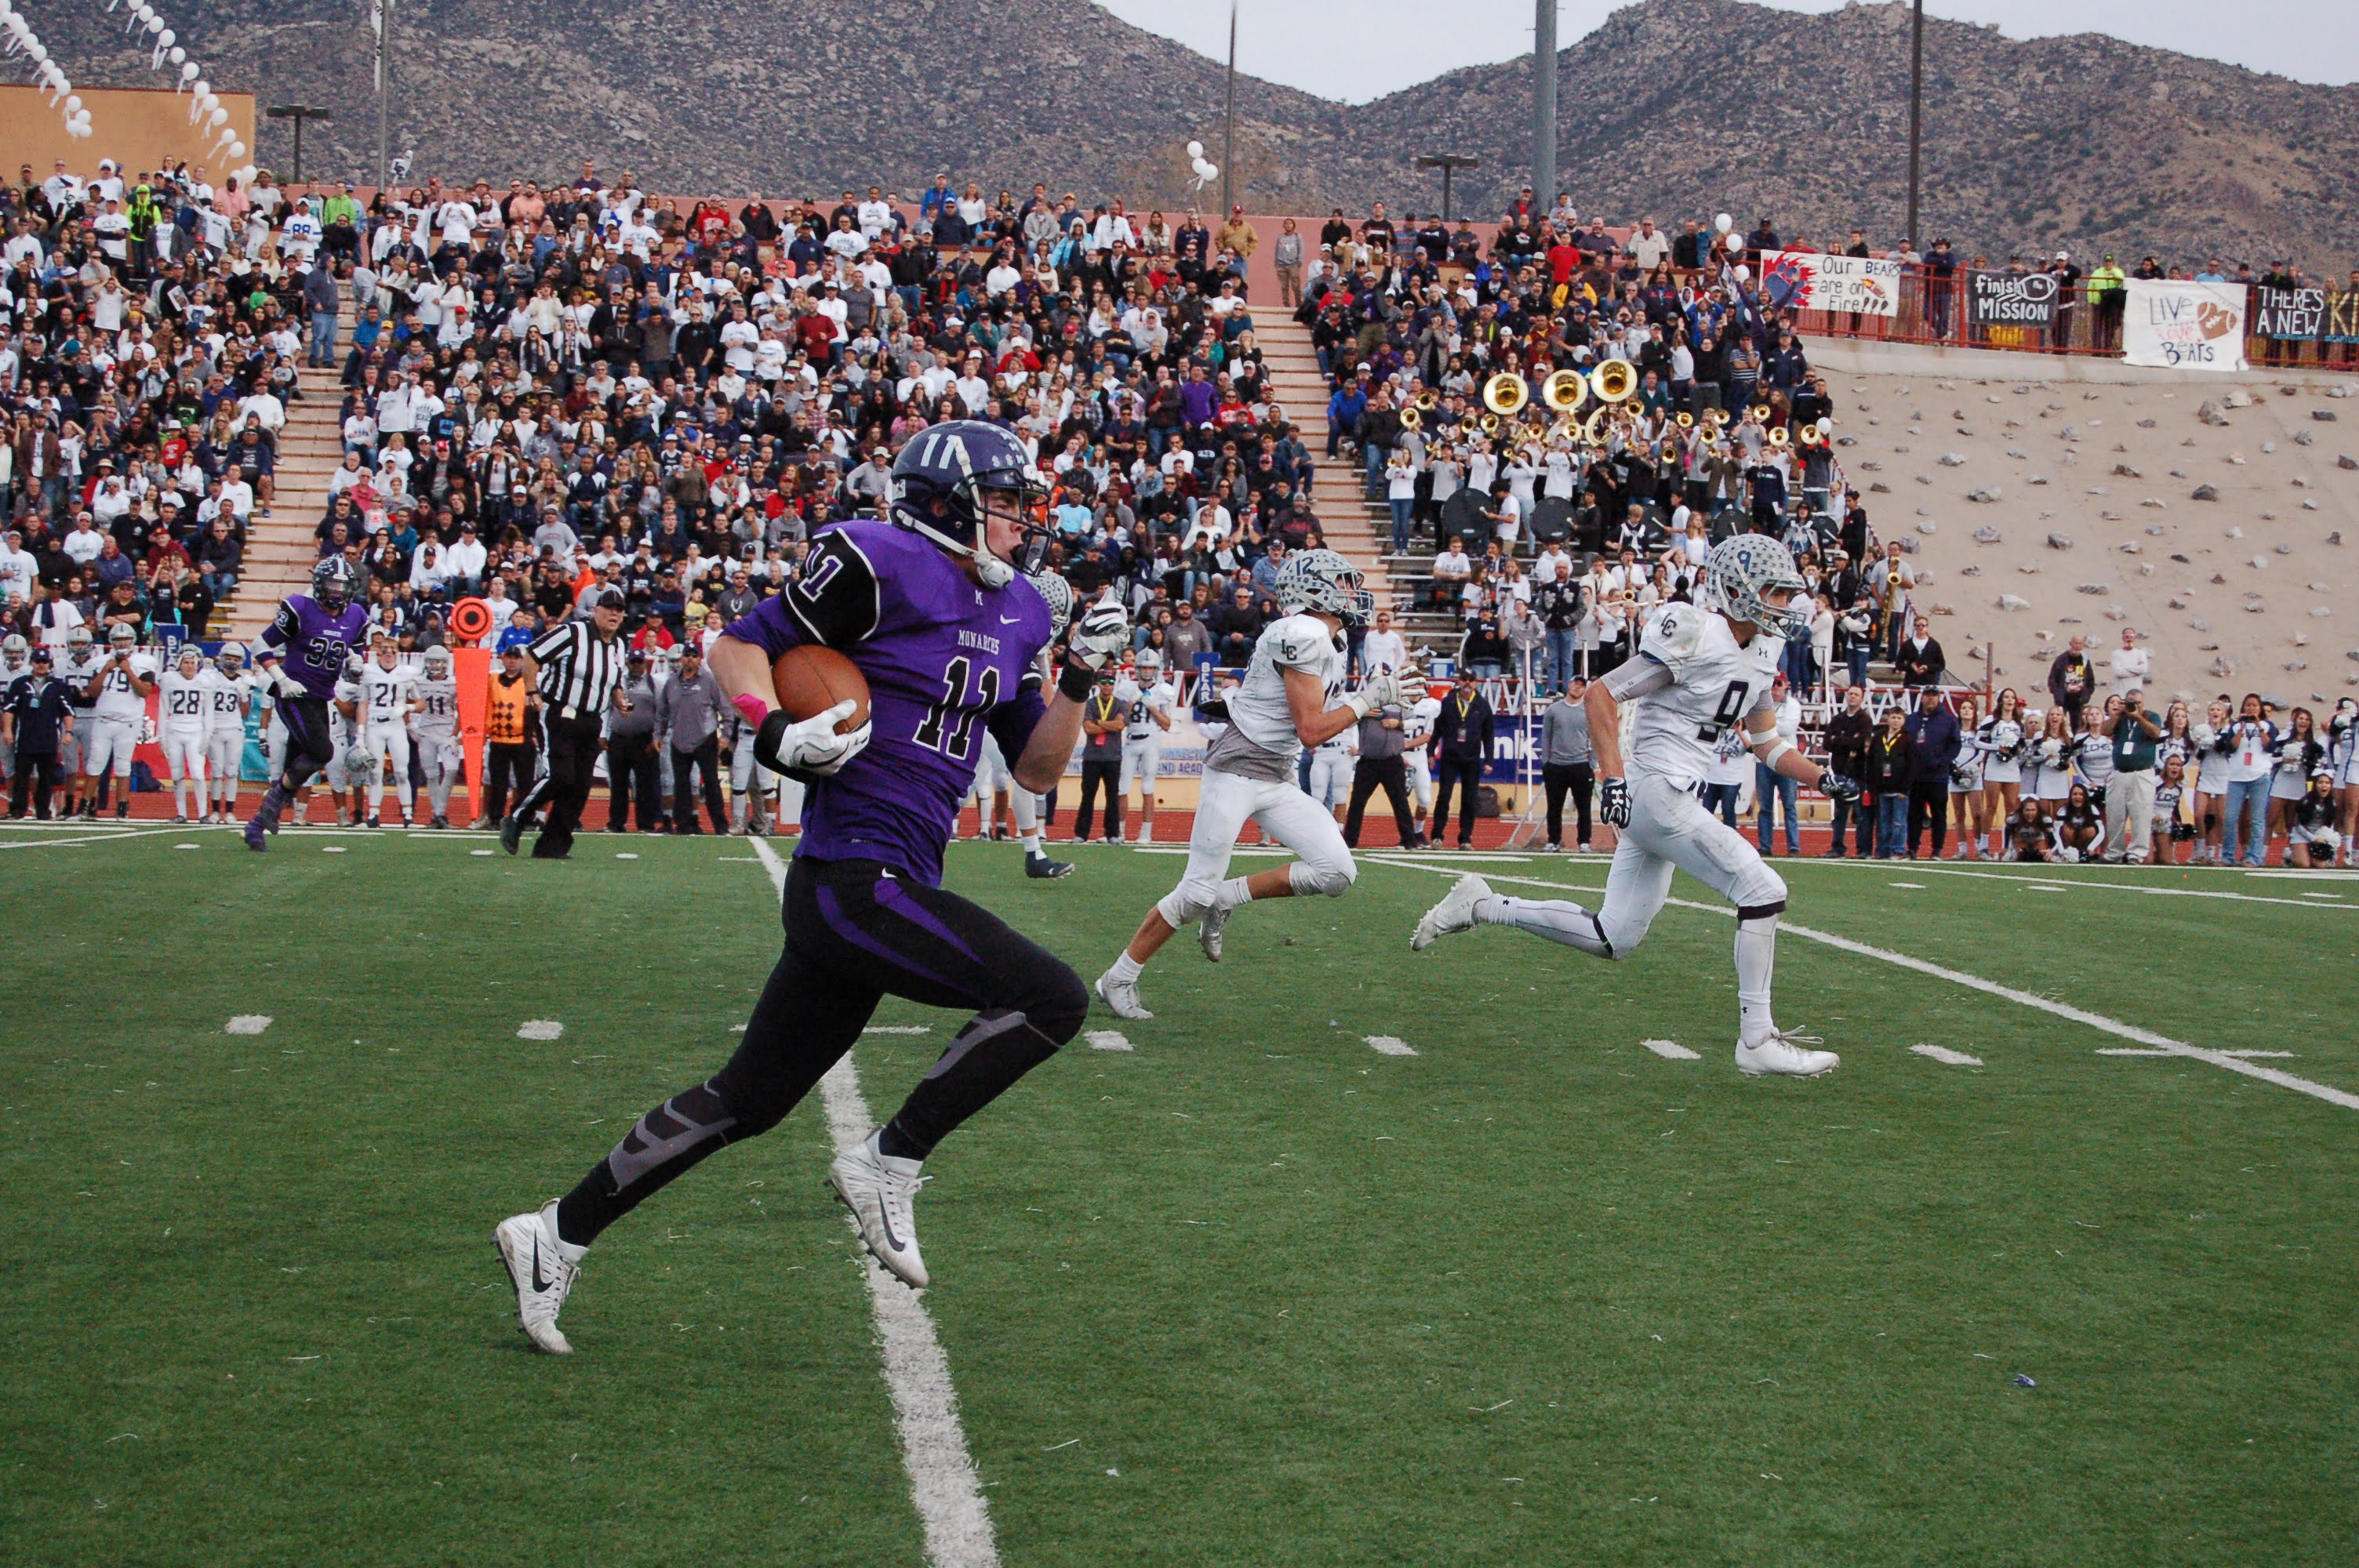 E. Mtn. resident helps Monarchs capture first-ever state football crown